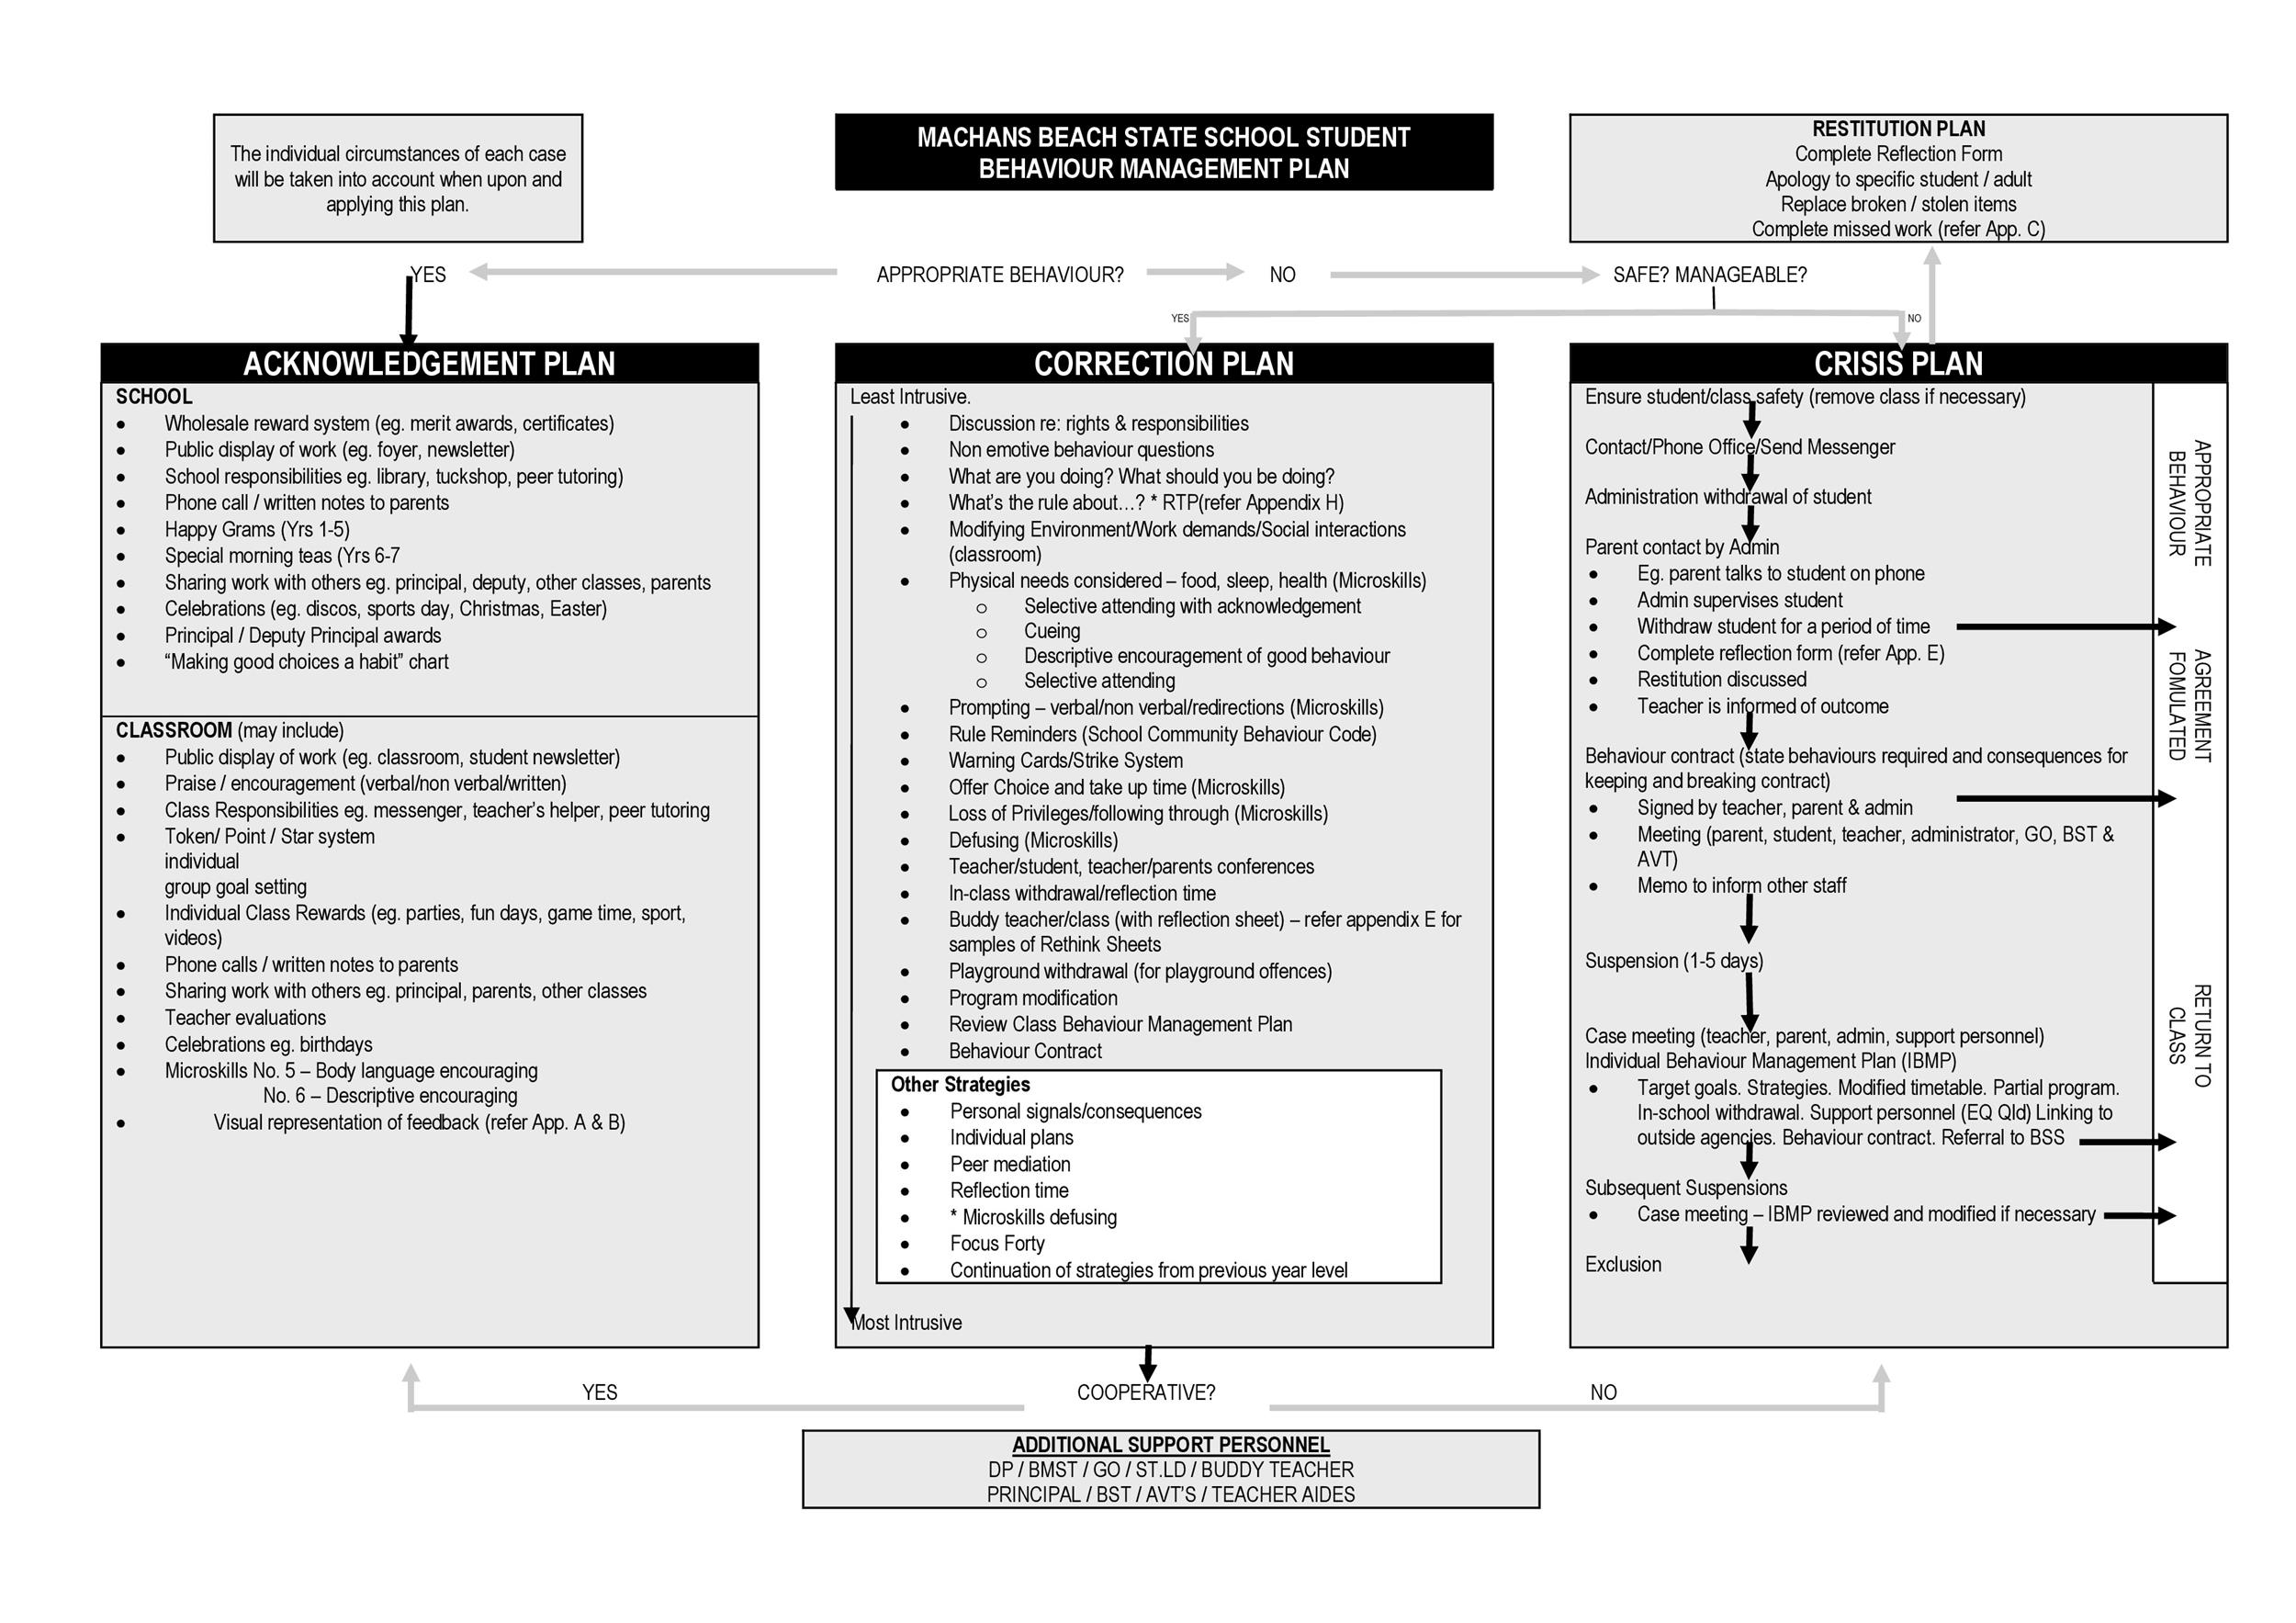 Classroom Management Plan - 38 Templates  Examples - Template Lab